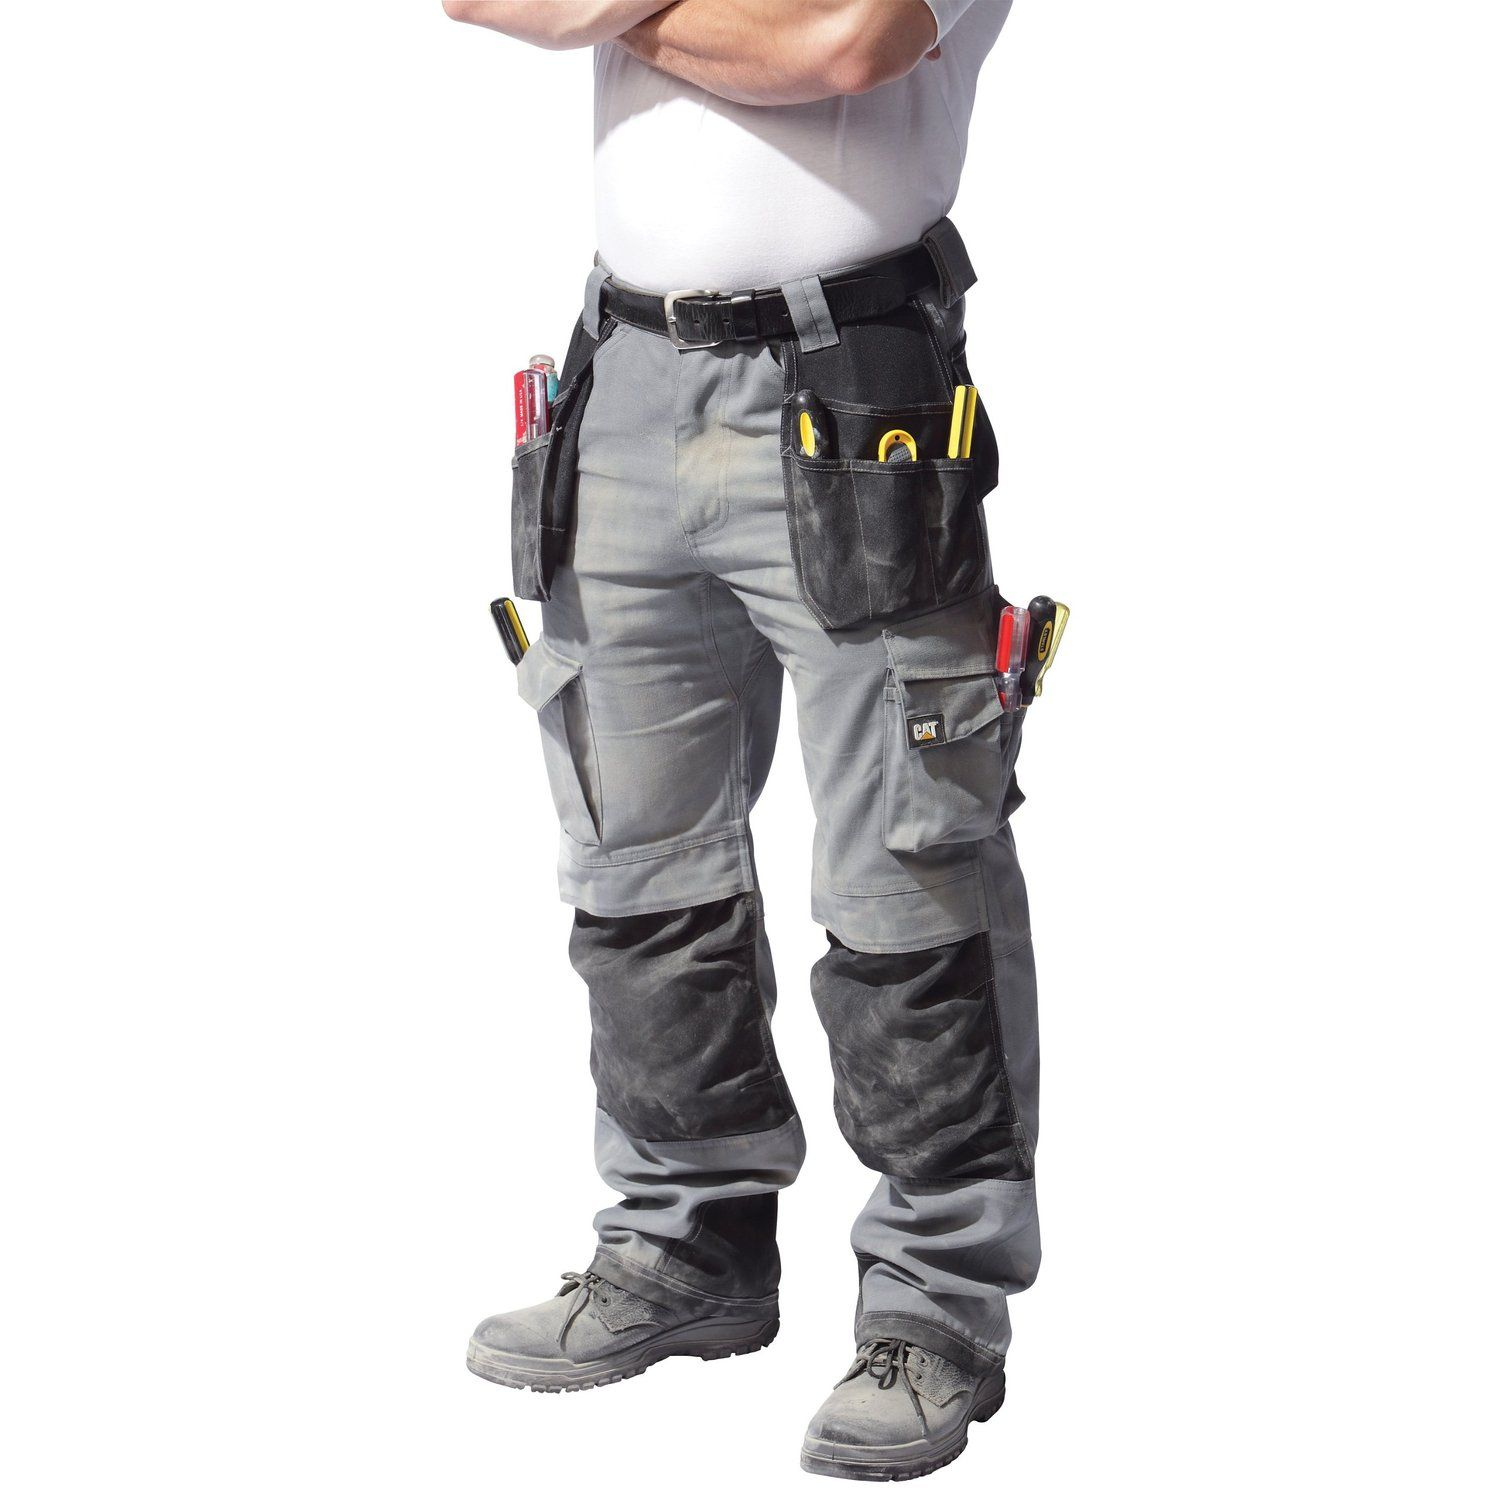 6bf816d445 Caterpillar CAT C172 Black Trademark Work Trousers with Knee Pad Pockets:  Amazon.co.uk: Clothing